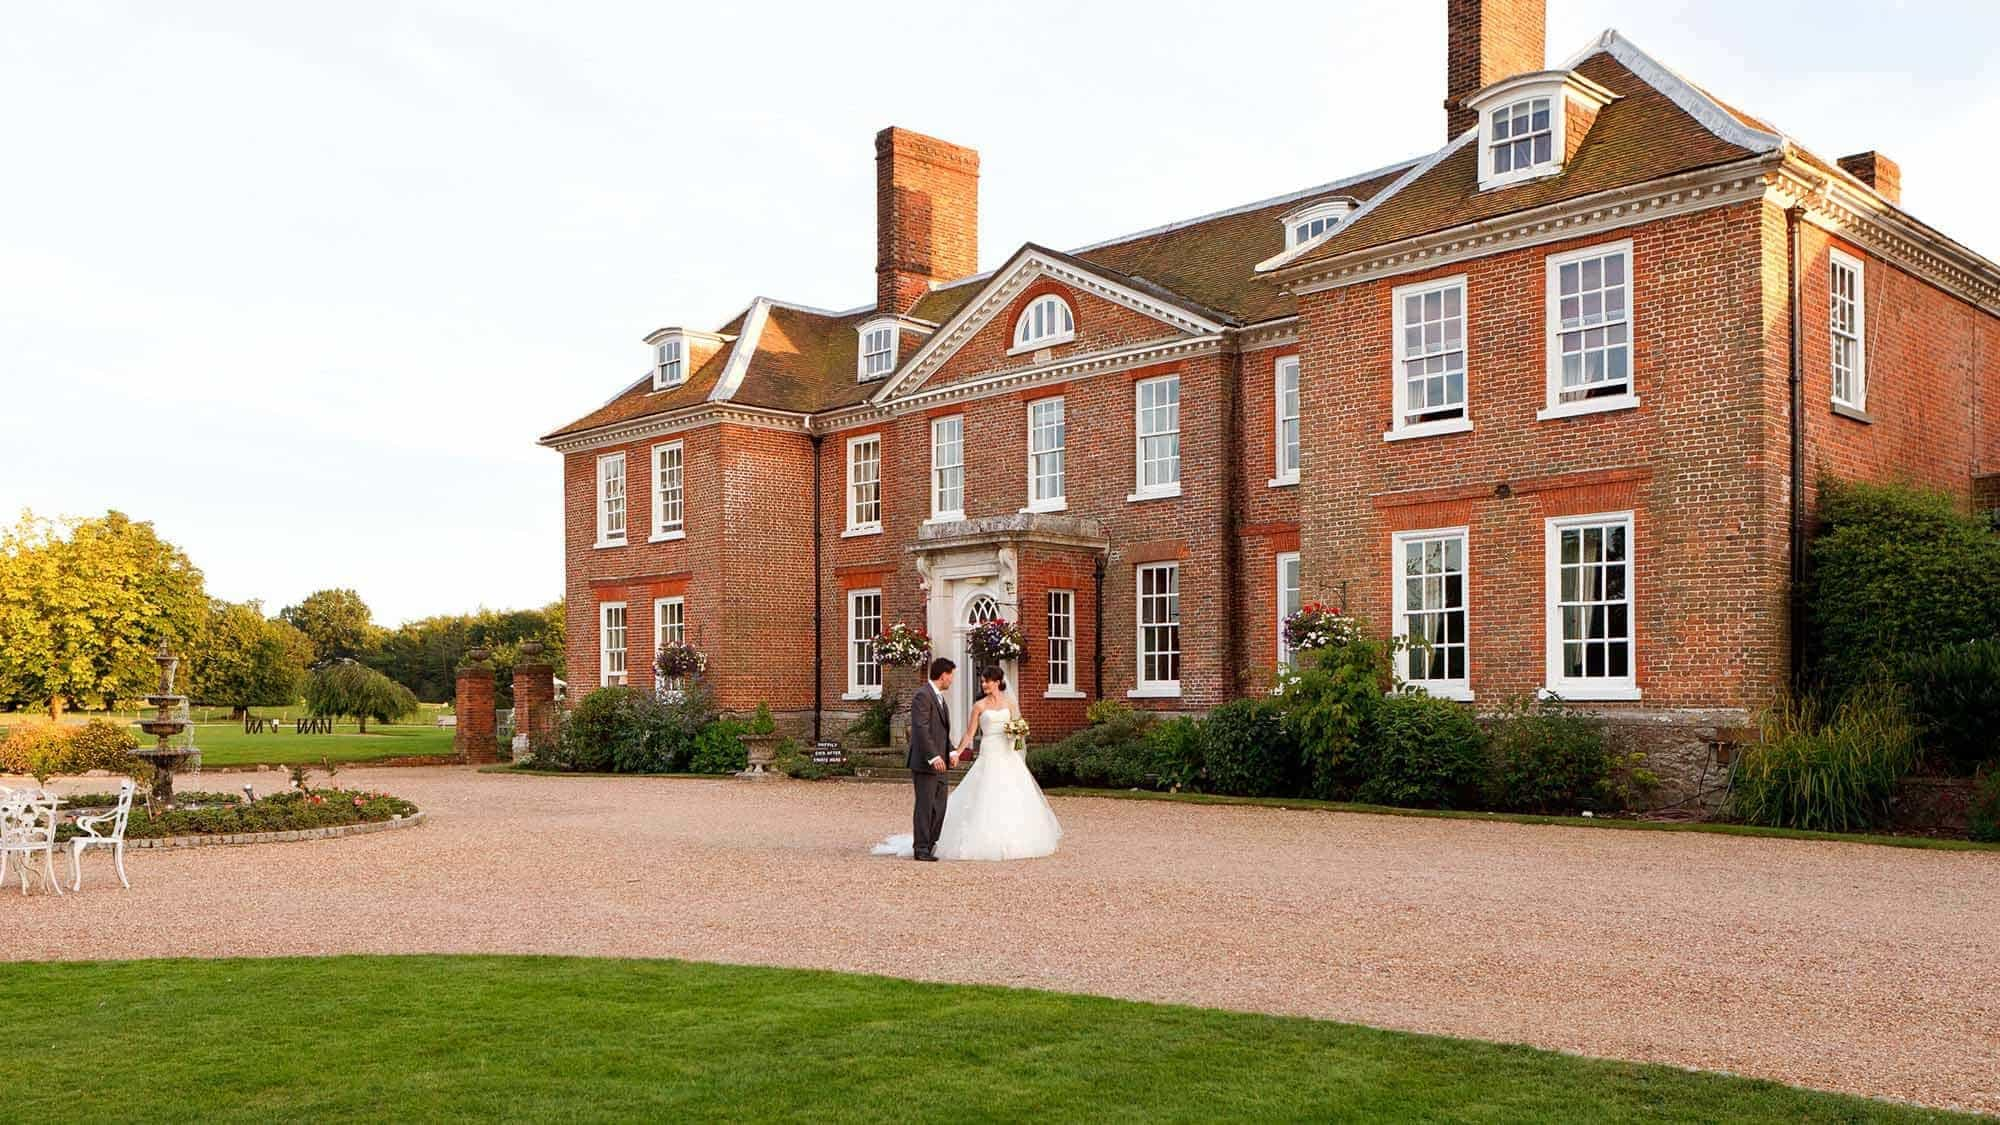 Maidstone Wedding Venue Lenham Chilston Park Hotel